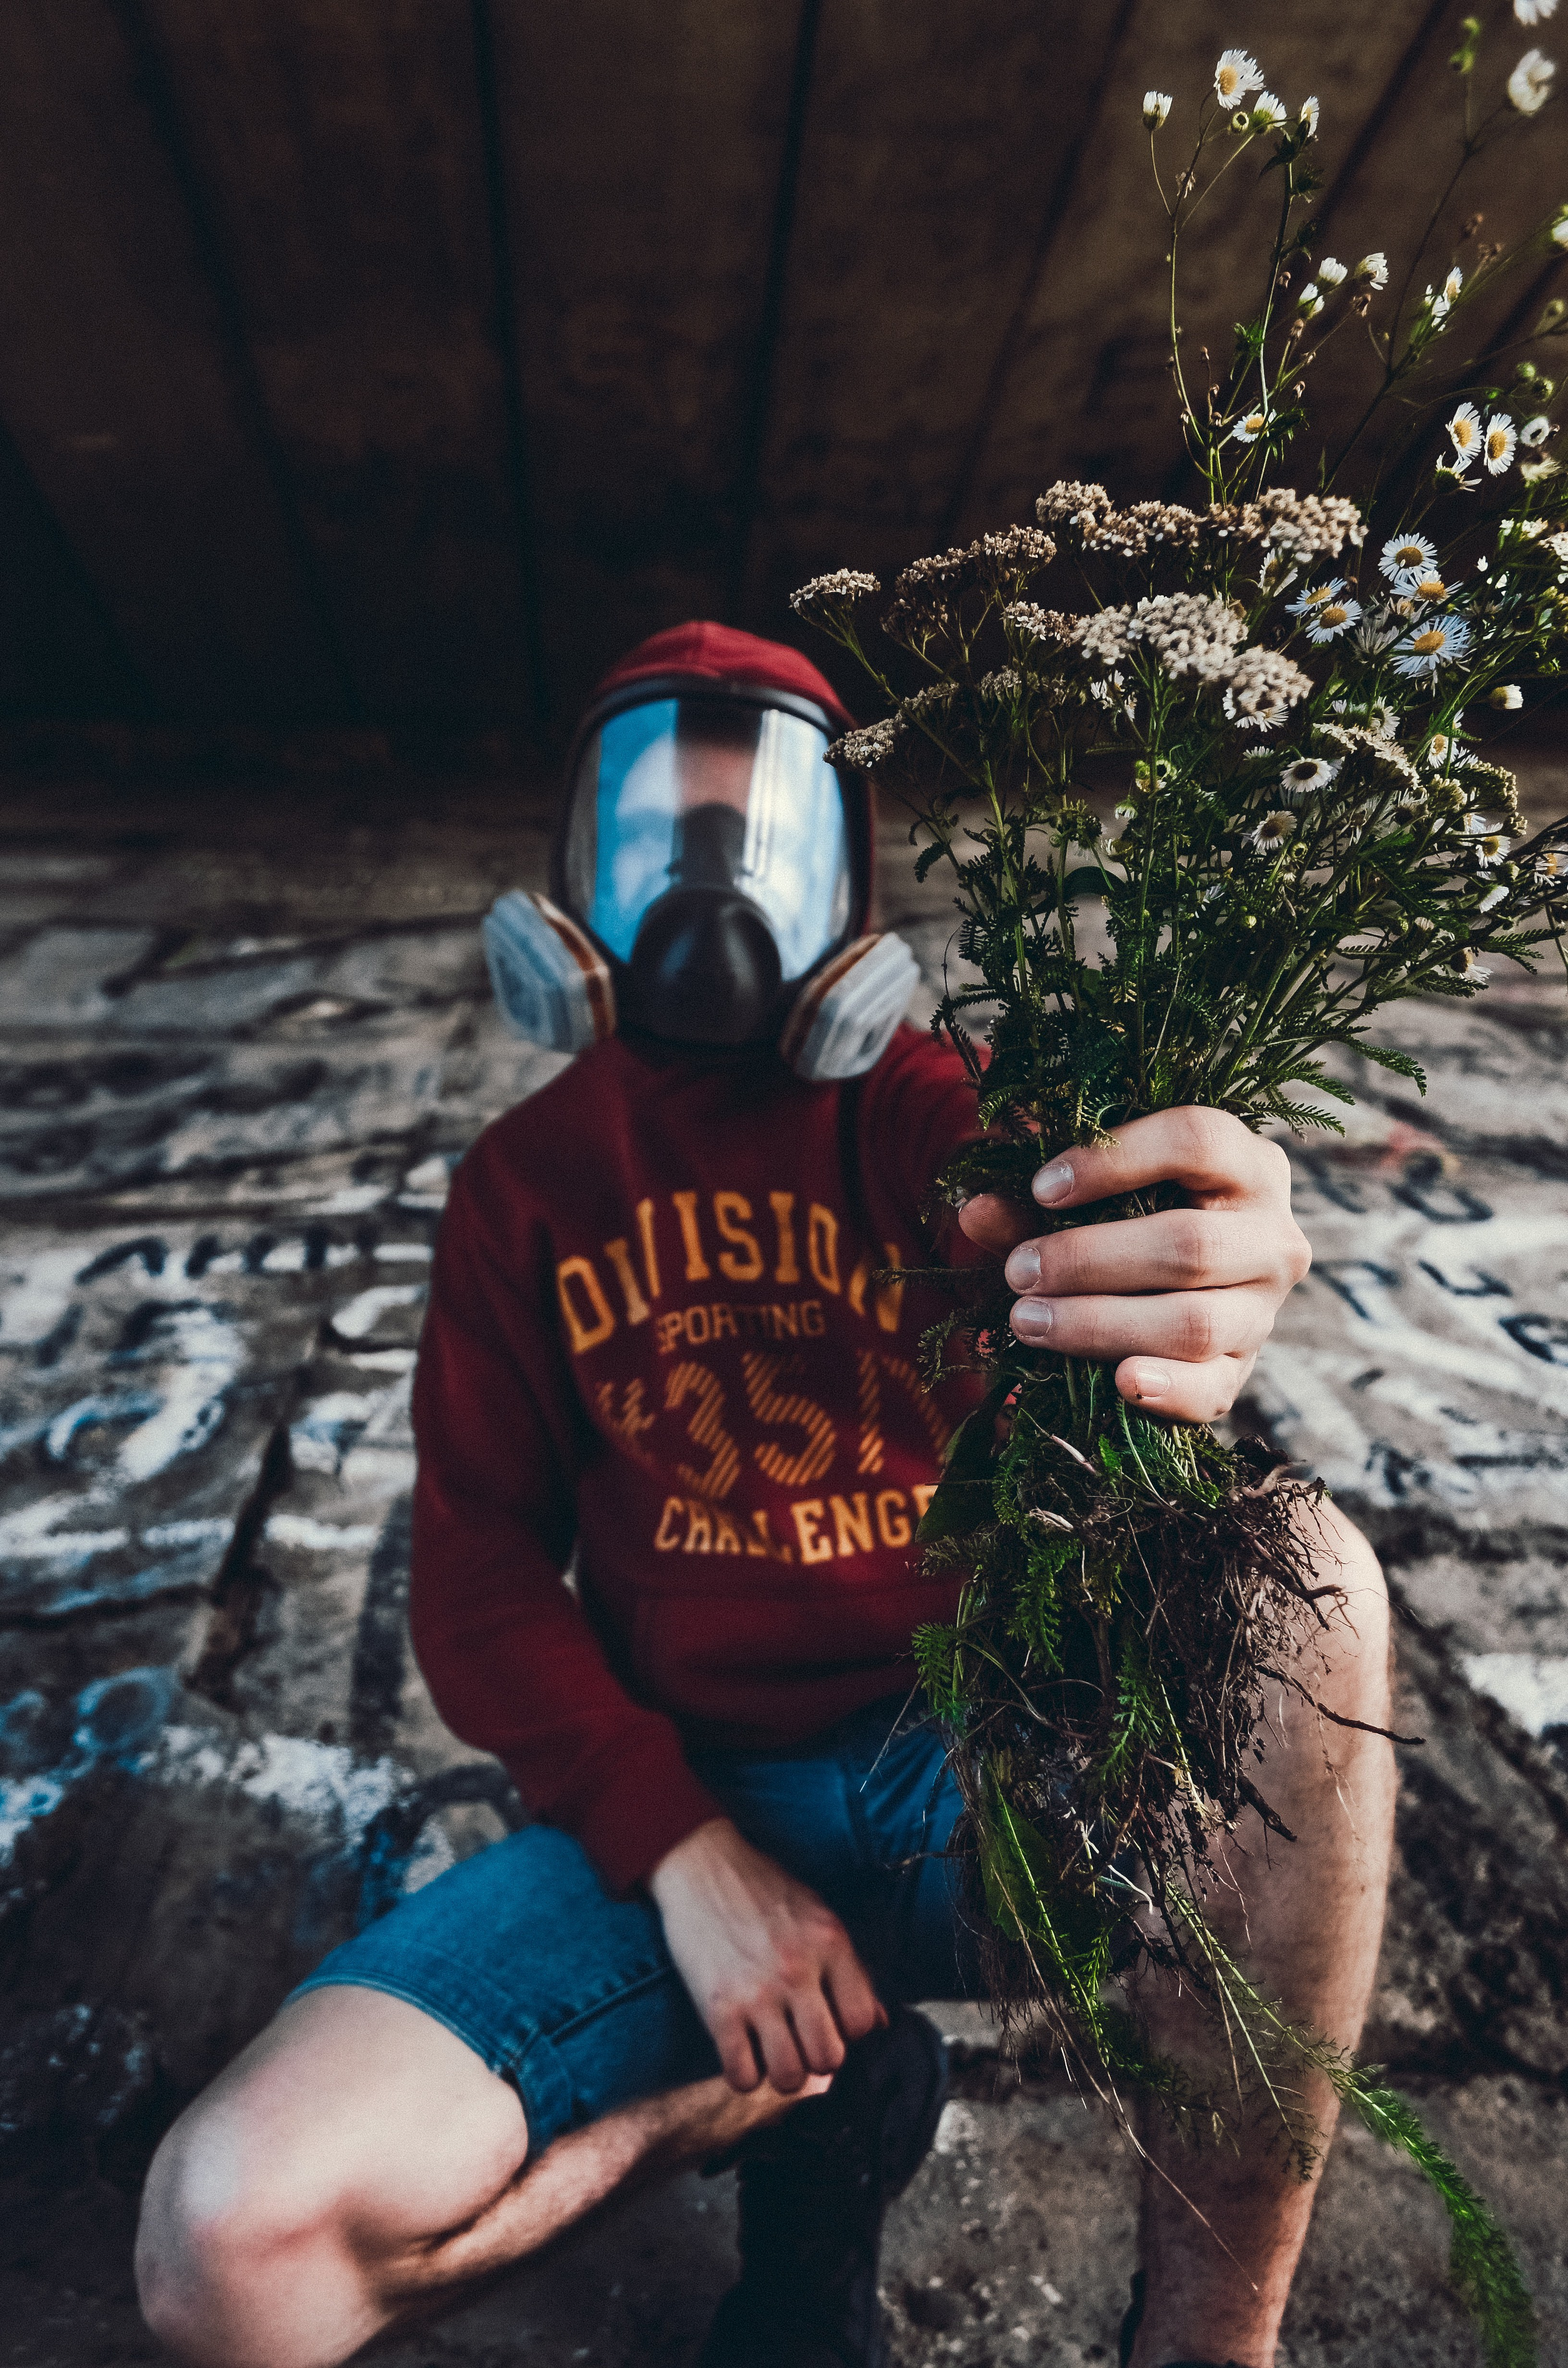 Man wearing gas mask while holding dead flowers